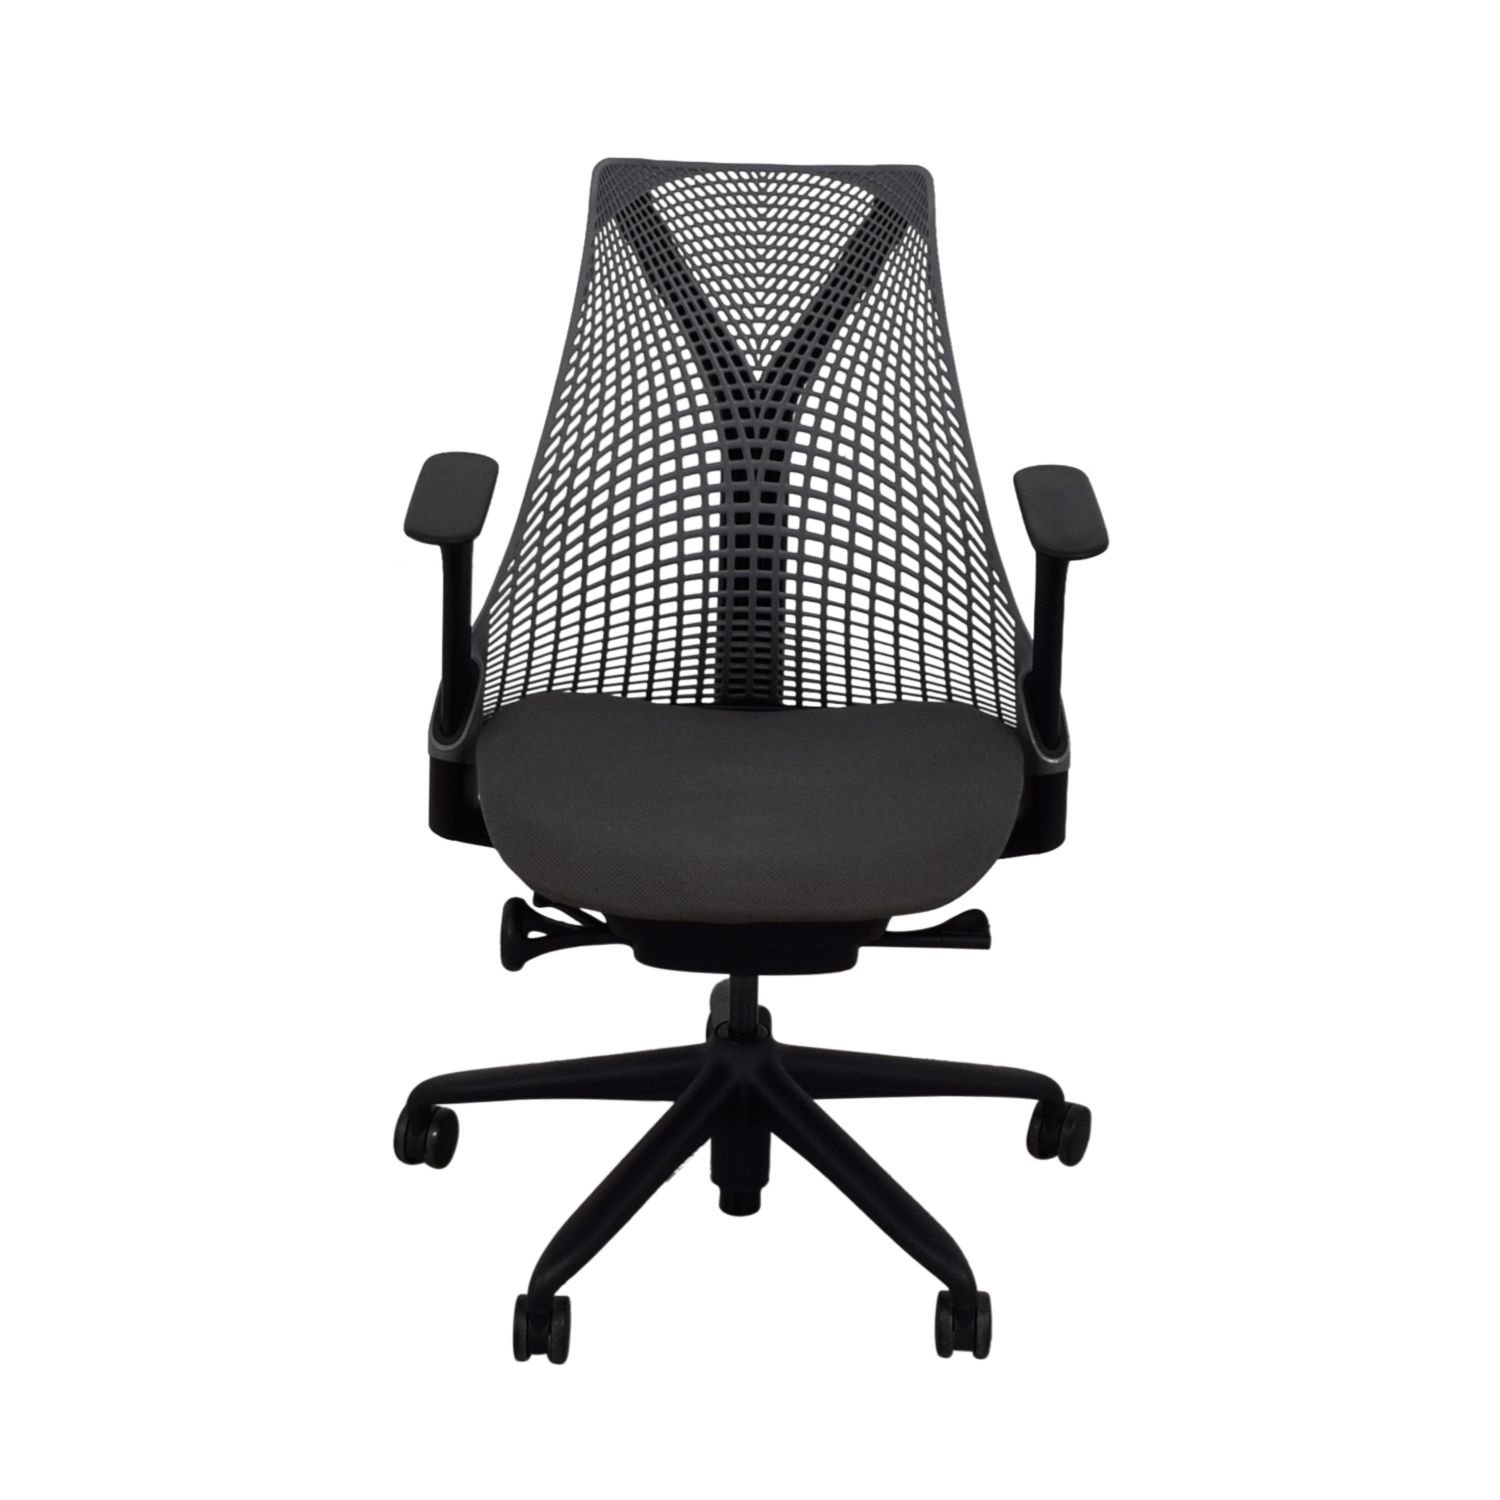 Herman Miller Slate Grey and Black Sayl Chair / Home Office Chairs